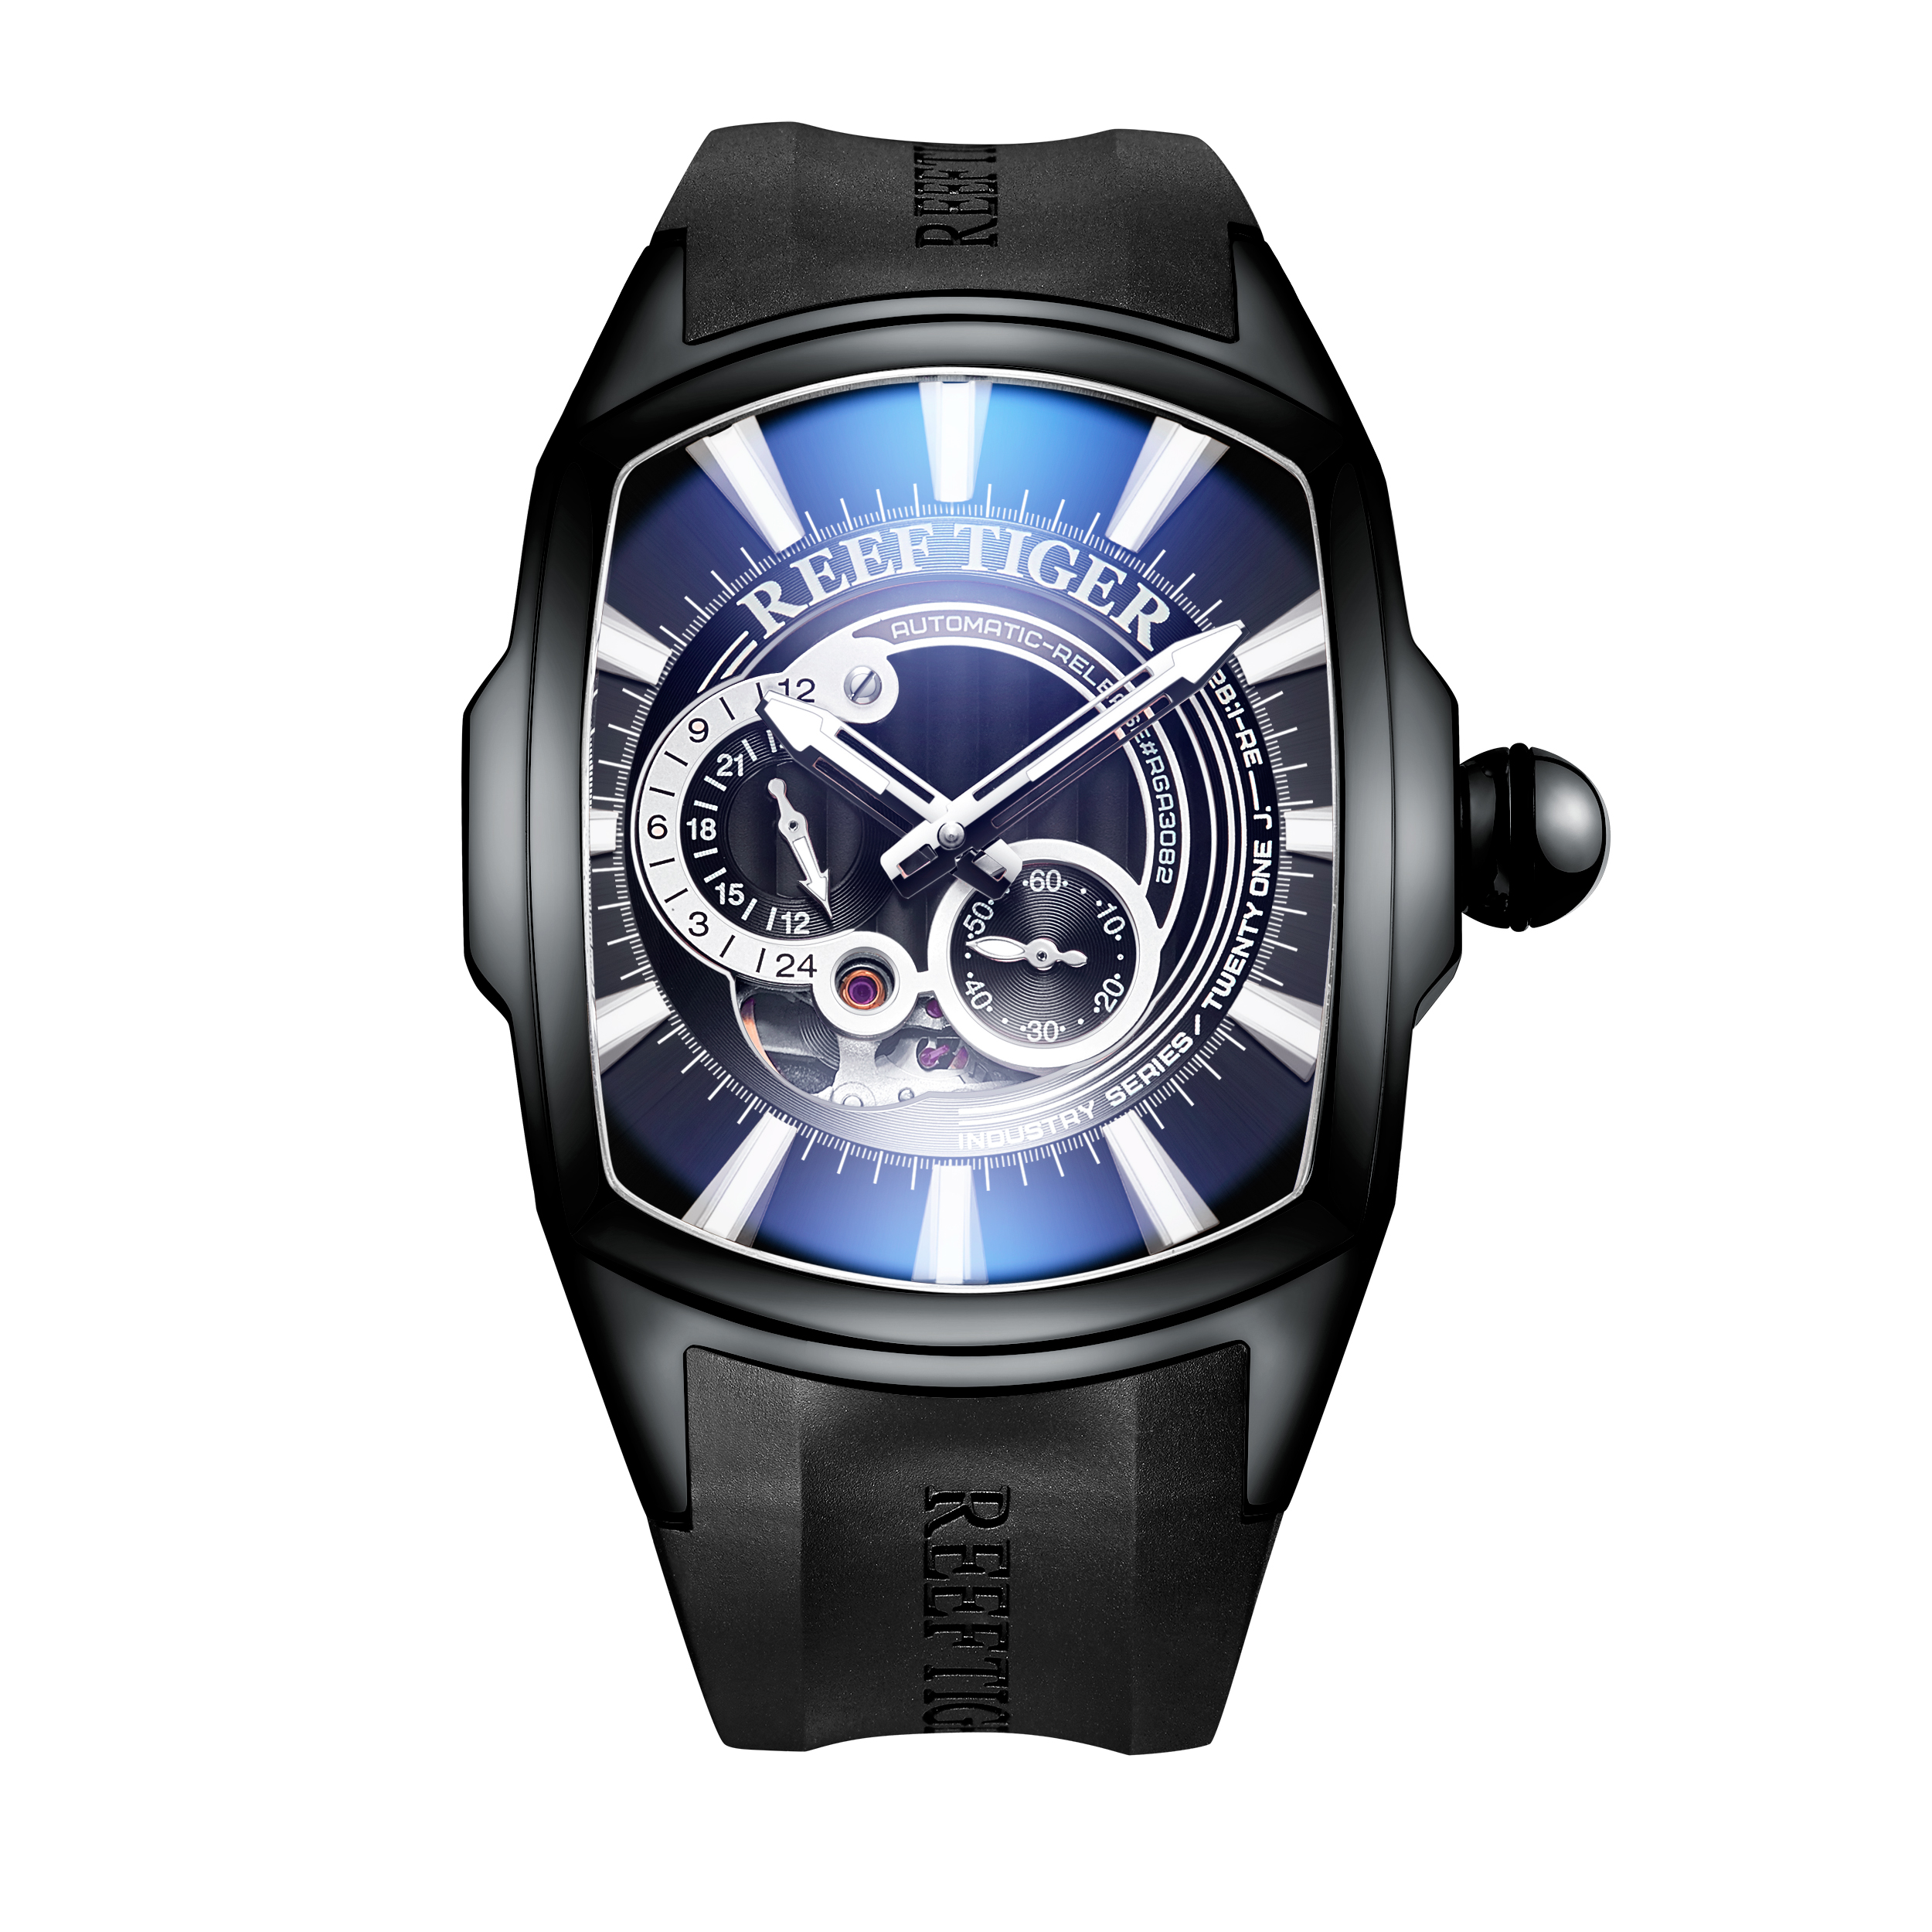 2019 New Arrival Reef Tiger/RT Mens Sports Automatic Watch Black Dial Black Rubber Strap Waterproof Watch RGA3069S